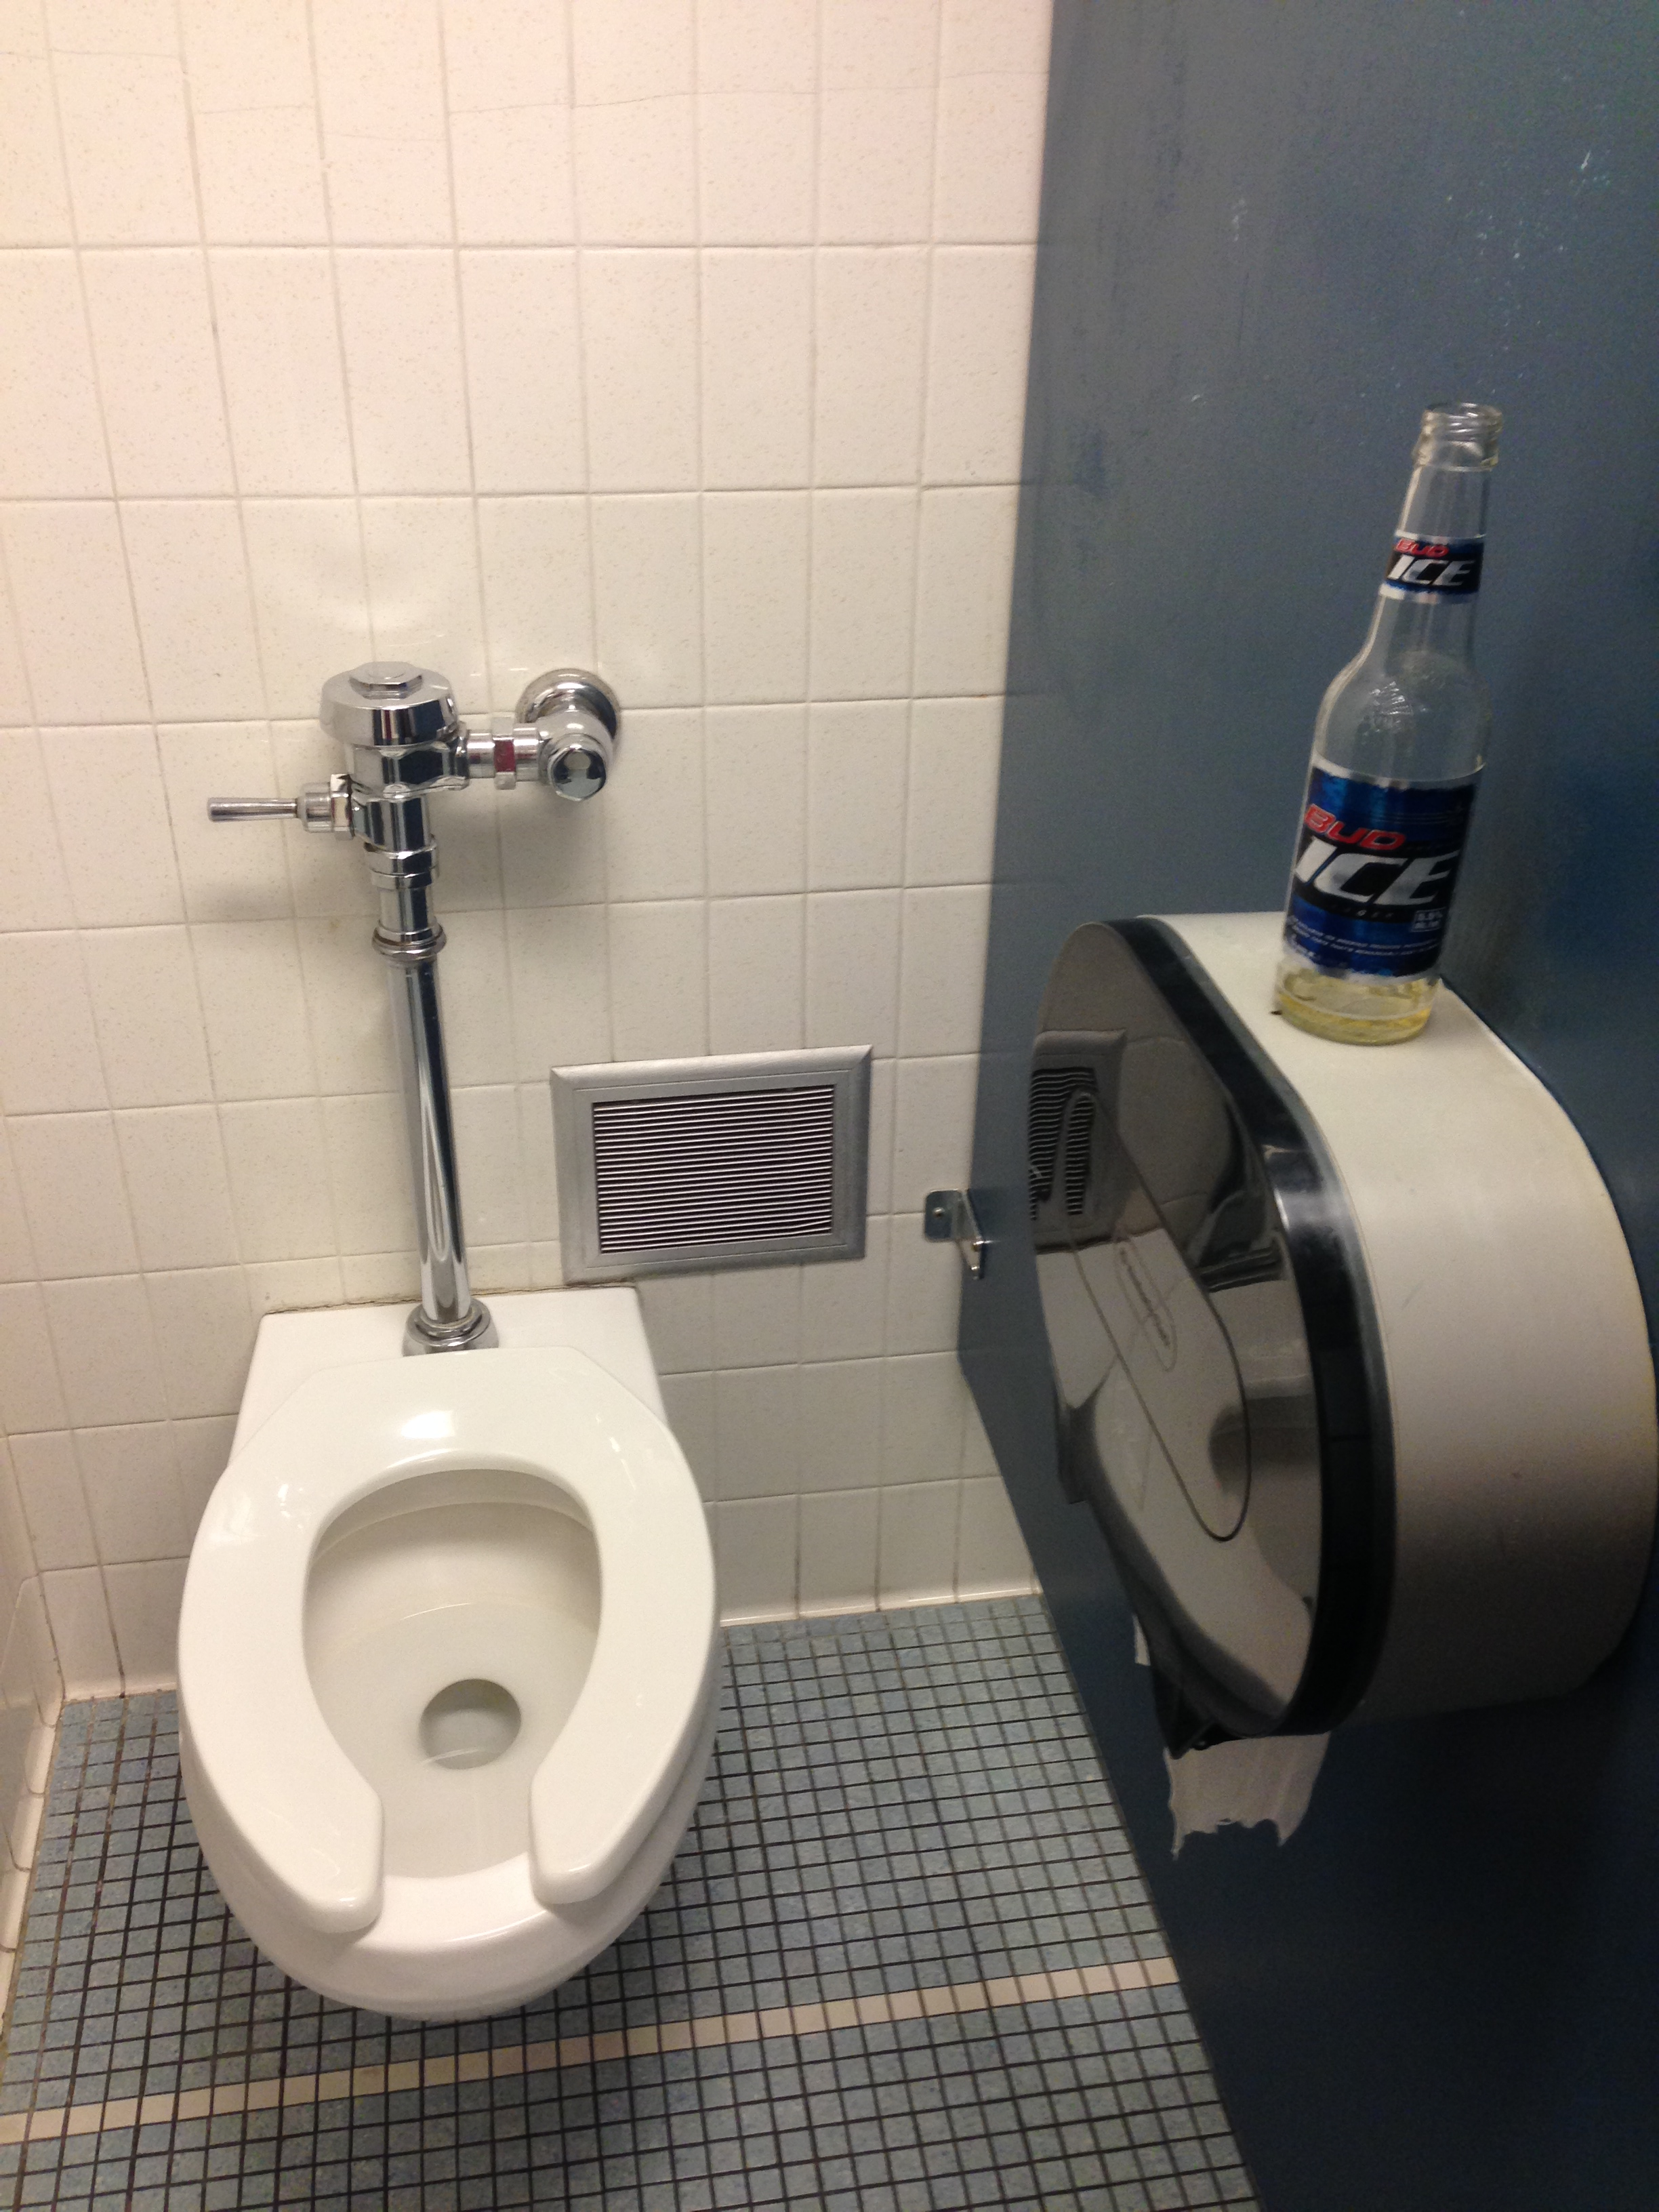 Questions for the Dudebro Drinking a Beer in the Campus Restroom Stall A NonExhaustive List